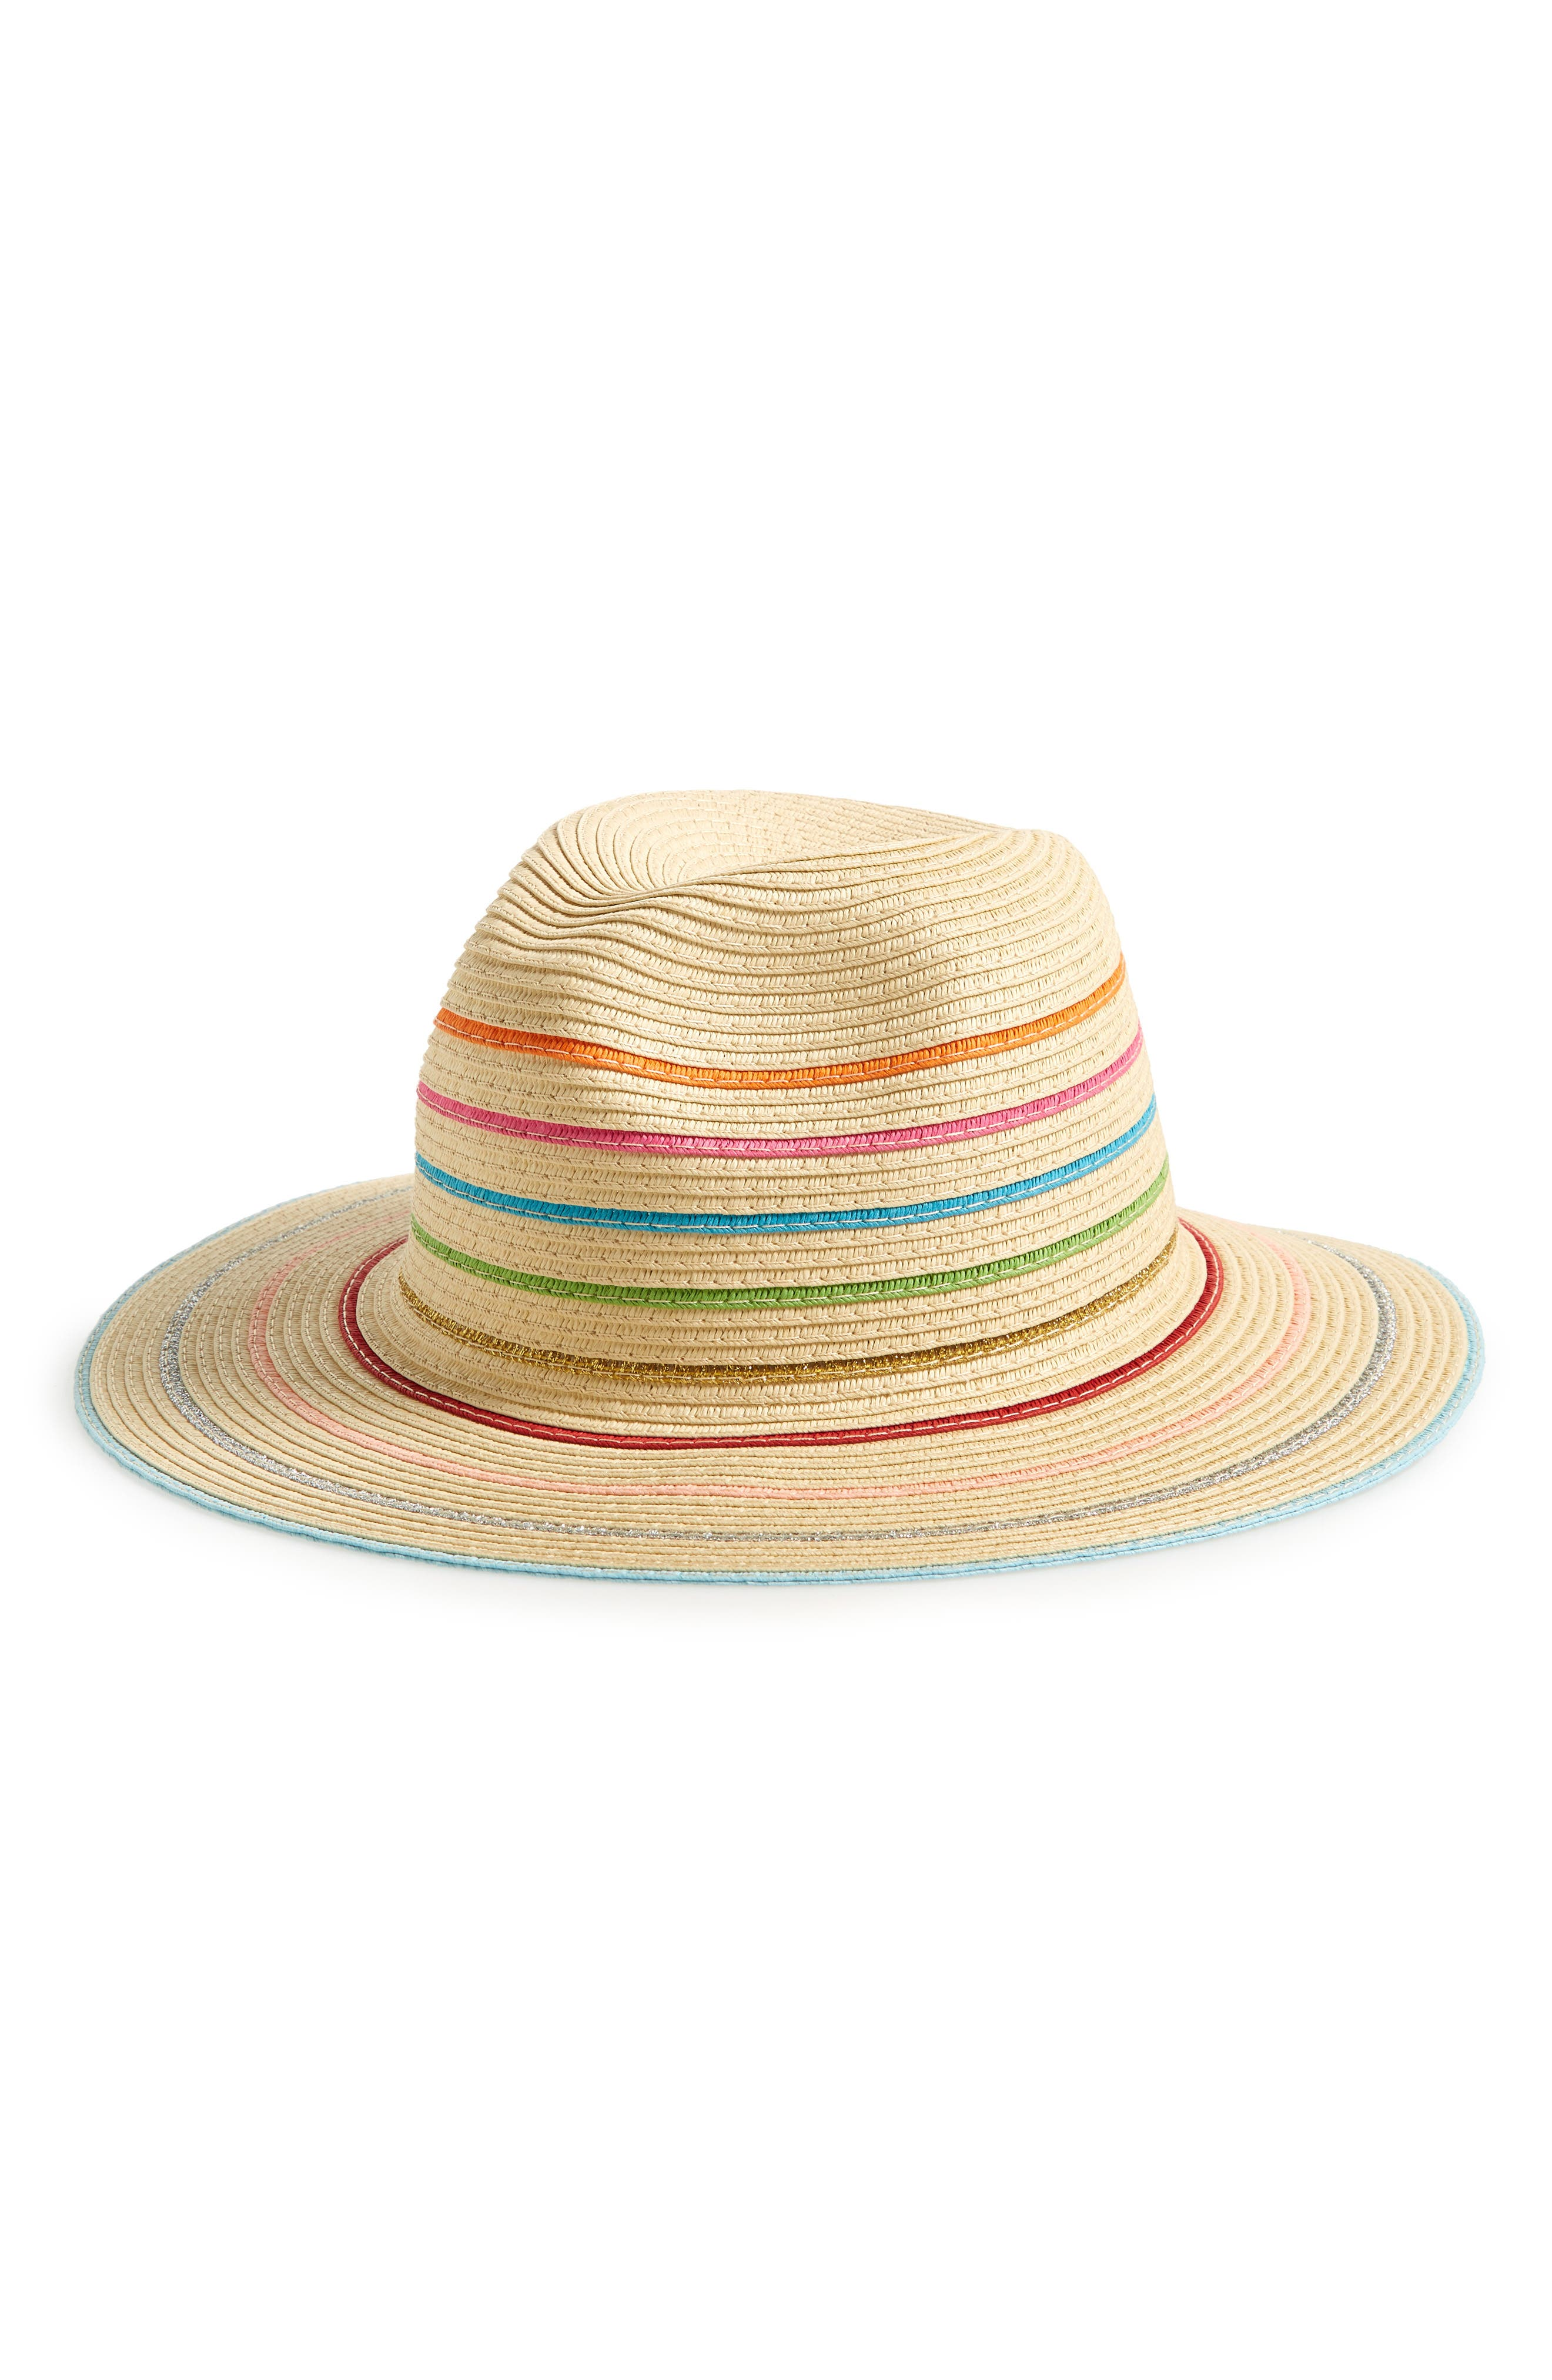 ECHO, Stripe Packable Straw Fedora, Main thumbnail 1, color, 200